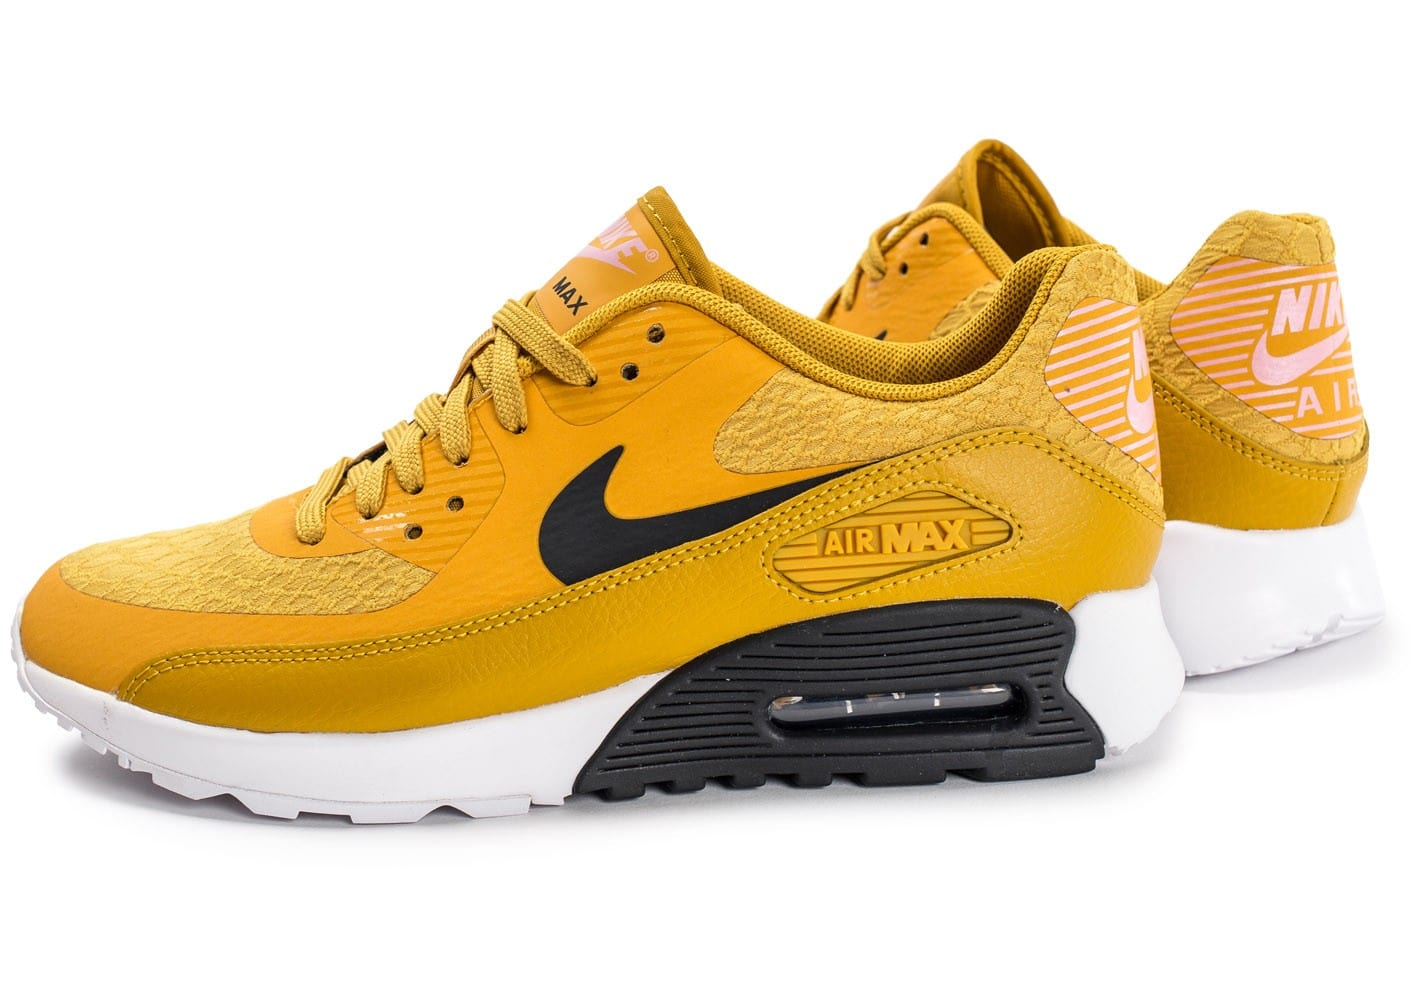 buy cheap competitive price picked up air max nike jaune,air max 90 essential noir et rose femme,air max bw